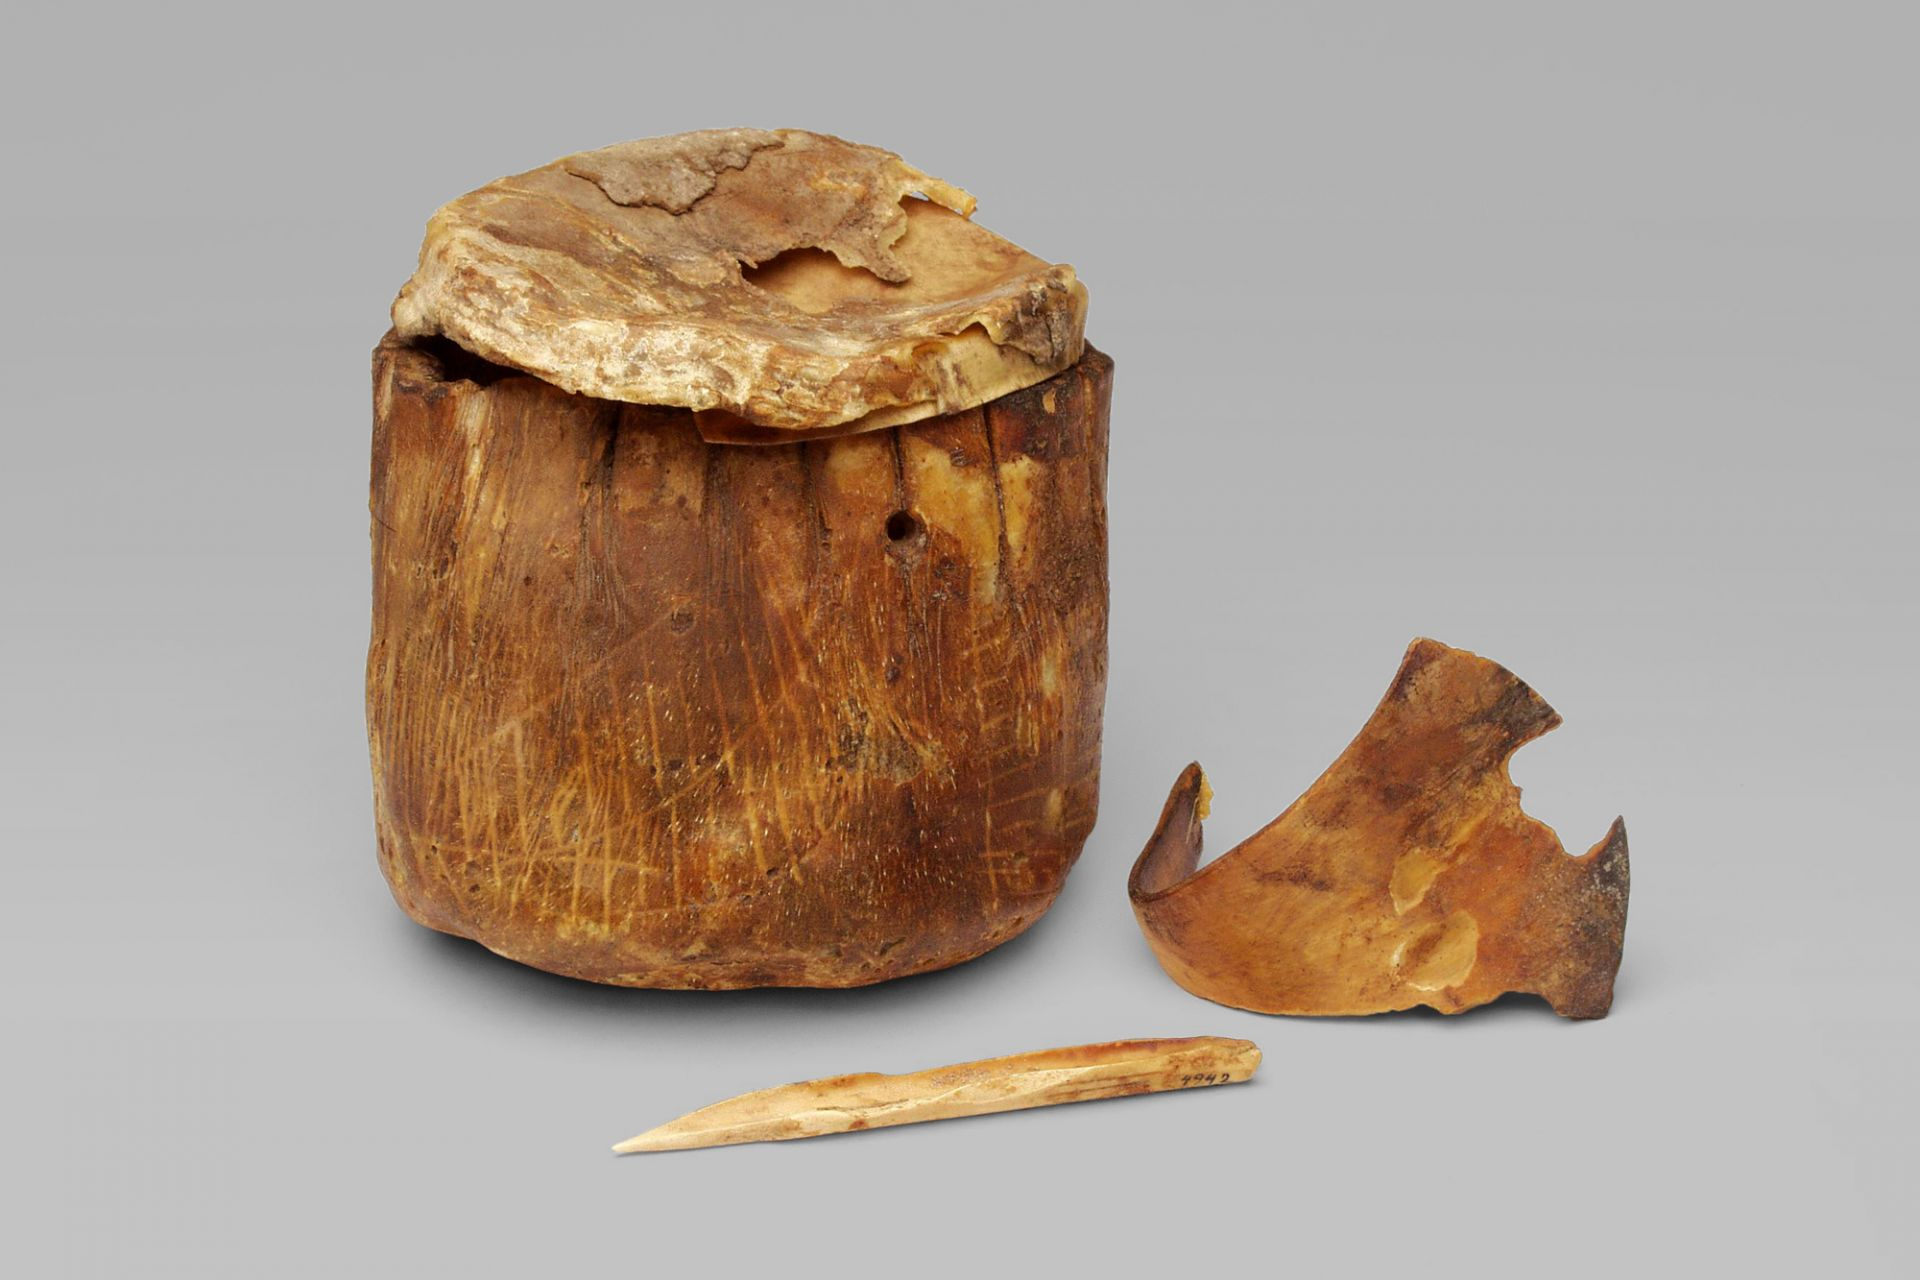 Rawhide vessel with incised drawing and bone tools, Egypt, 4th millennium BCE